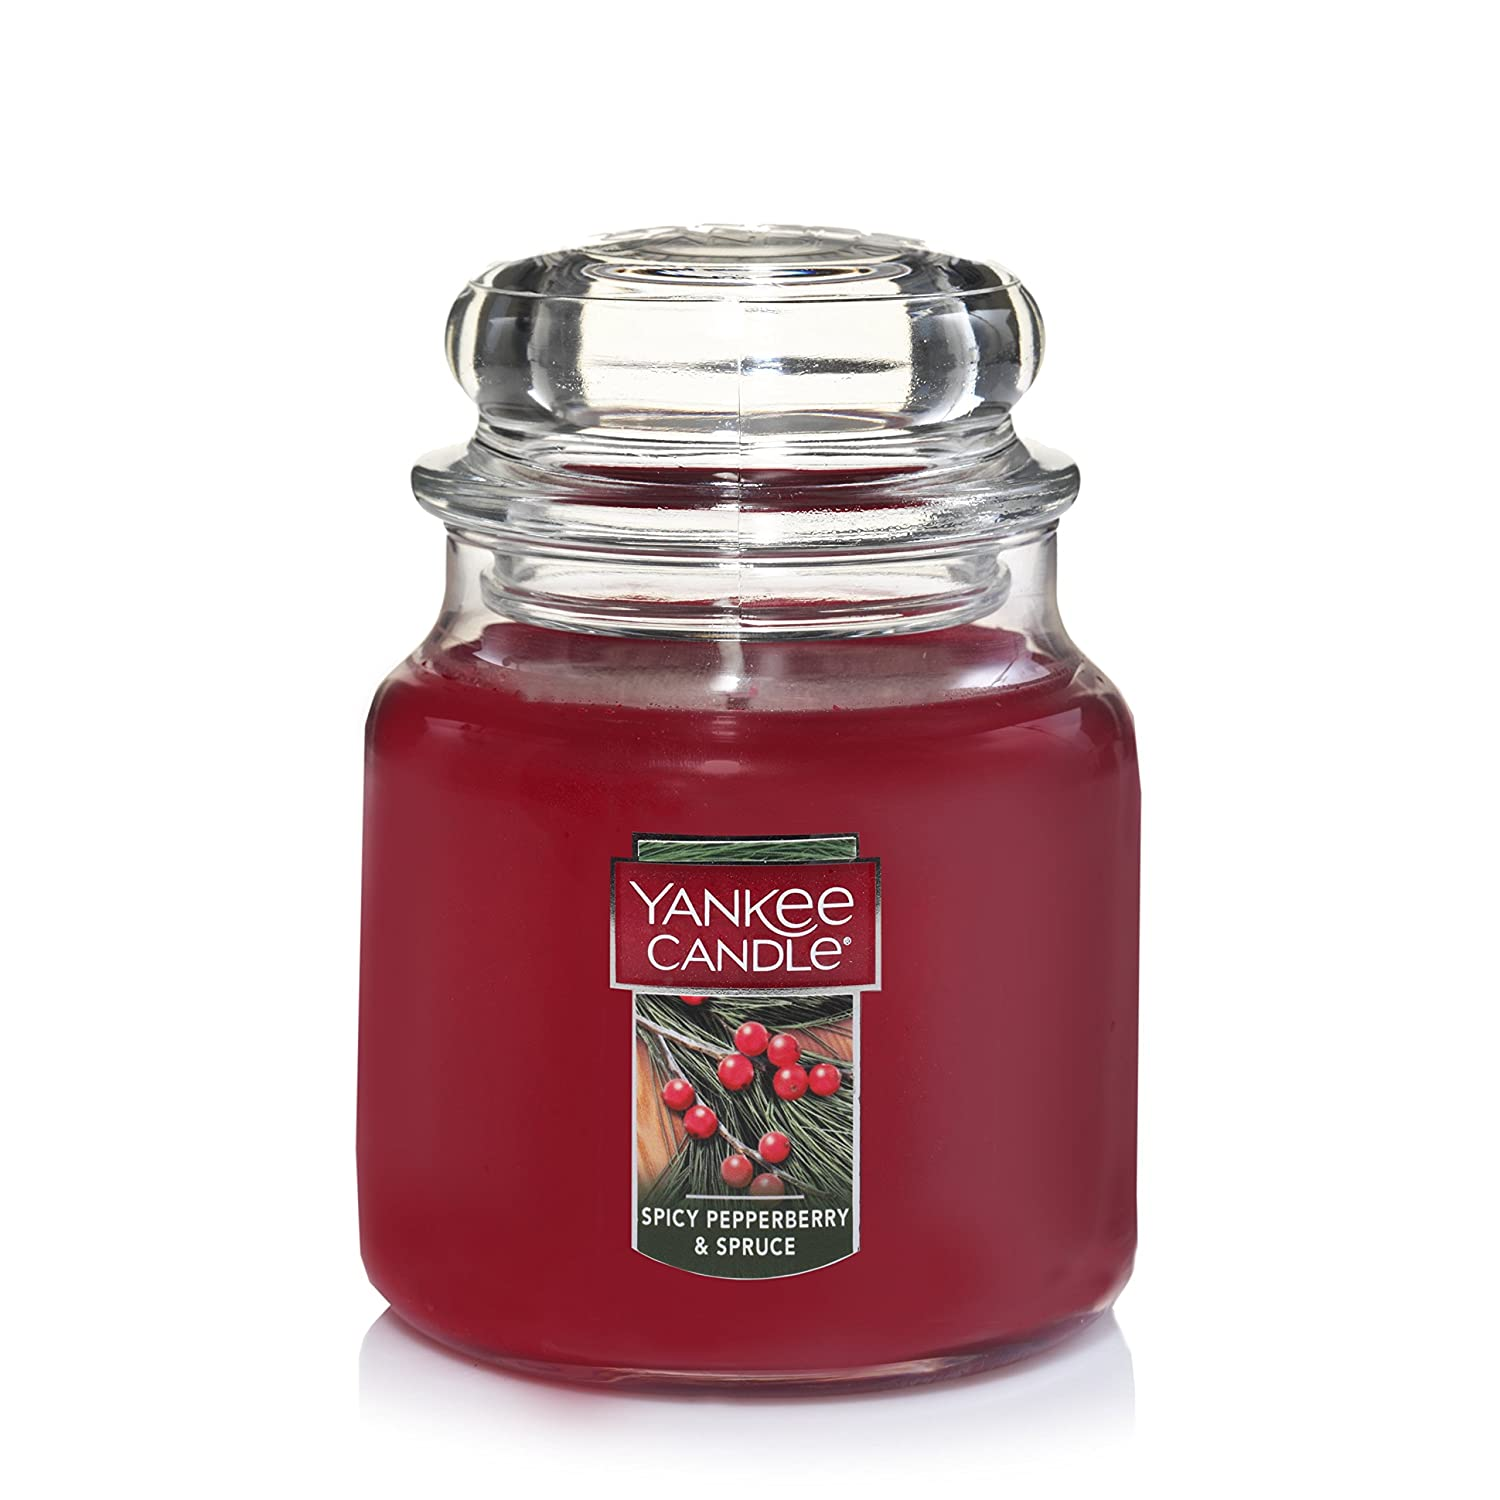 Yankee Candle Large 2-Wick Tumbler Candle, Spicy Pepperberry & Spruce Yankee Candle Company 1556336Z